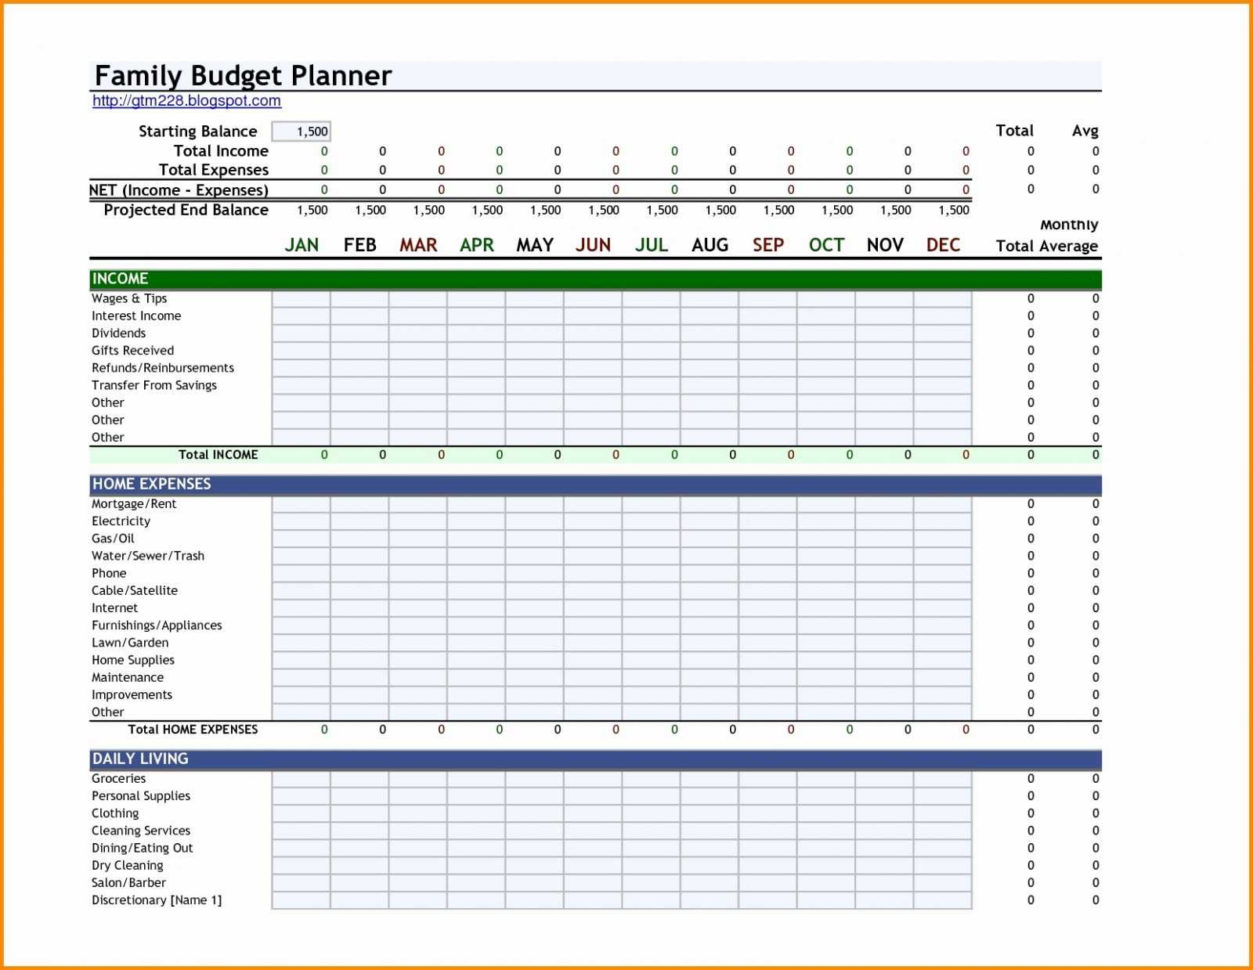 Excel Spreadsheet For Monthly Bills how to make an excel spreadsheet for monthly bills free excel spreadsheet for monthly bills Excel Spreadsheet Template For Monthly Bills excel spreadsheet for paying monthly bills excel spreadsheet for tracking monthly bills  Excel Spreadsheet For Monthly Bills Inside Excel Spreadsheet For Monthly Bills  Twables.site Excel Spreadsheet For Monthly Bills Google Spreadshee